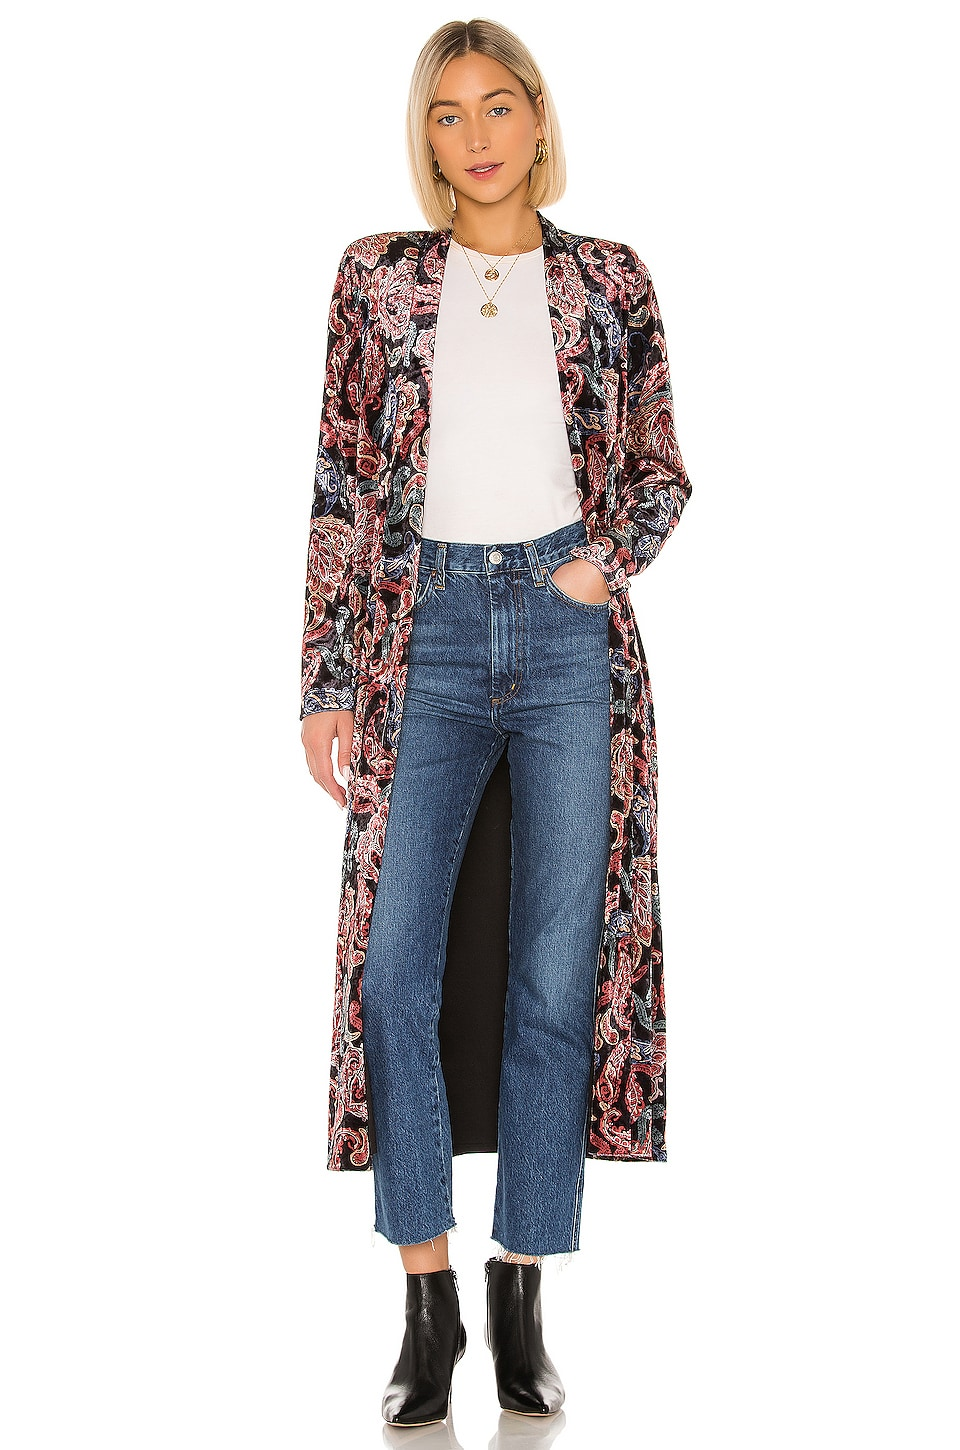 House of Harlow 1960 X REVOLVE Jodie Collared Jacket in Noir Paisley